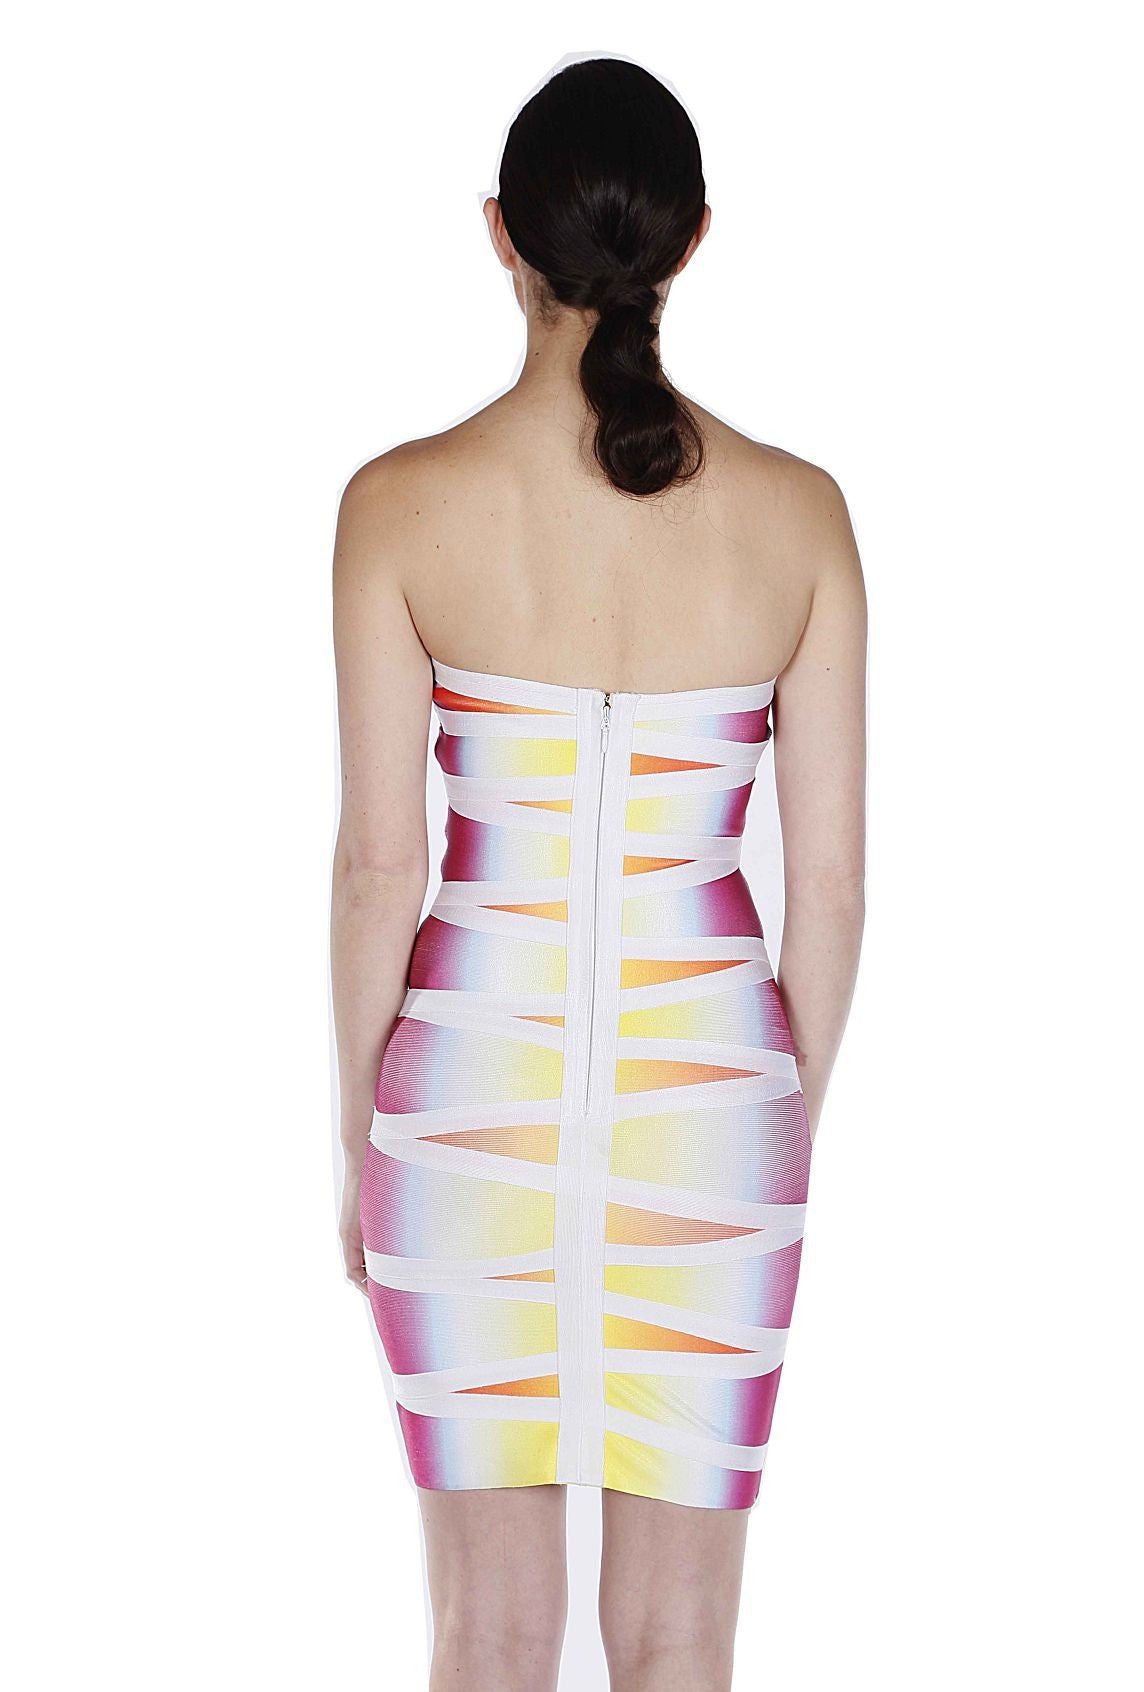 Ombre Bandage Dress - waist trainer, dress - waist trainer, swancoast.com ann chery,